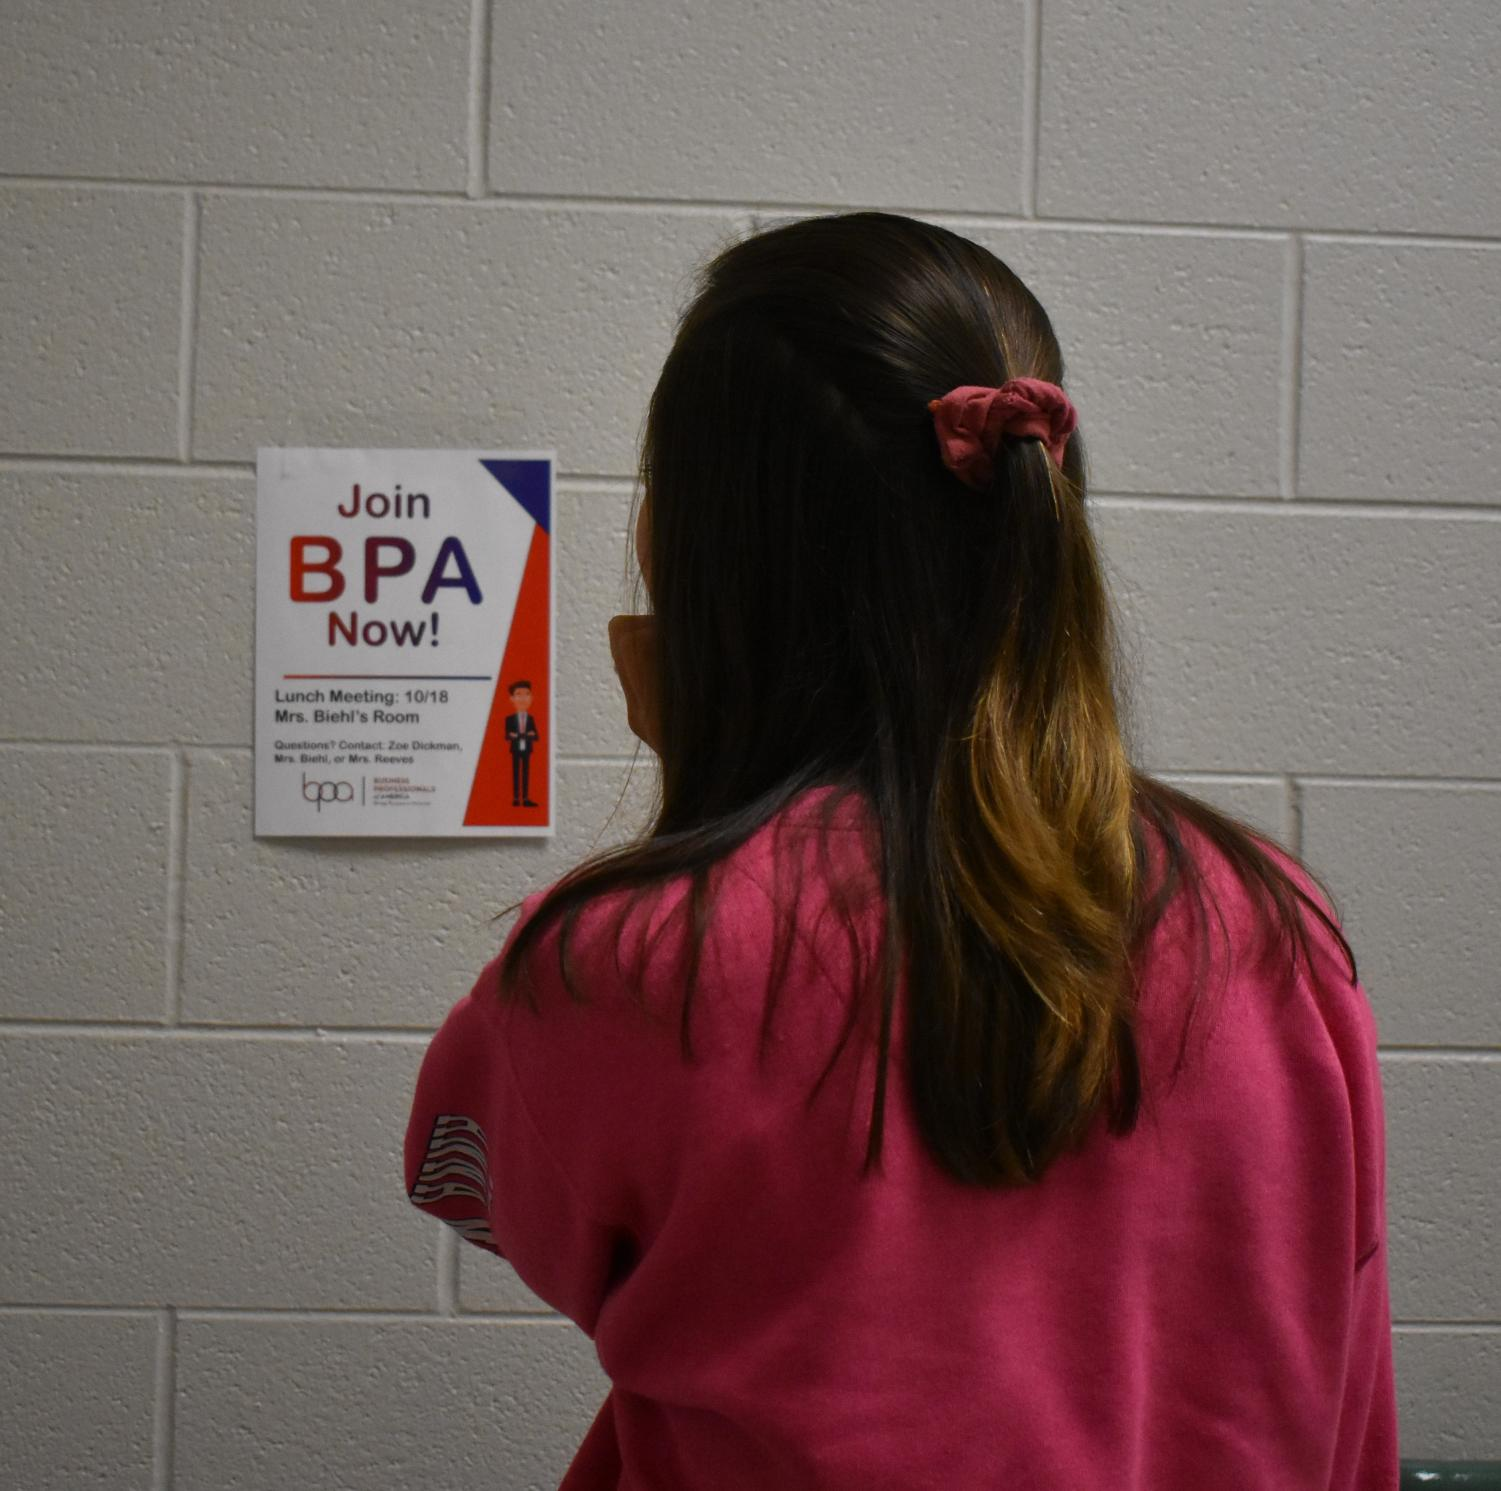 A student examines a poster for a BPA meeting.